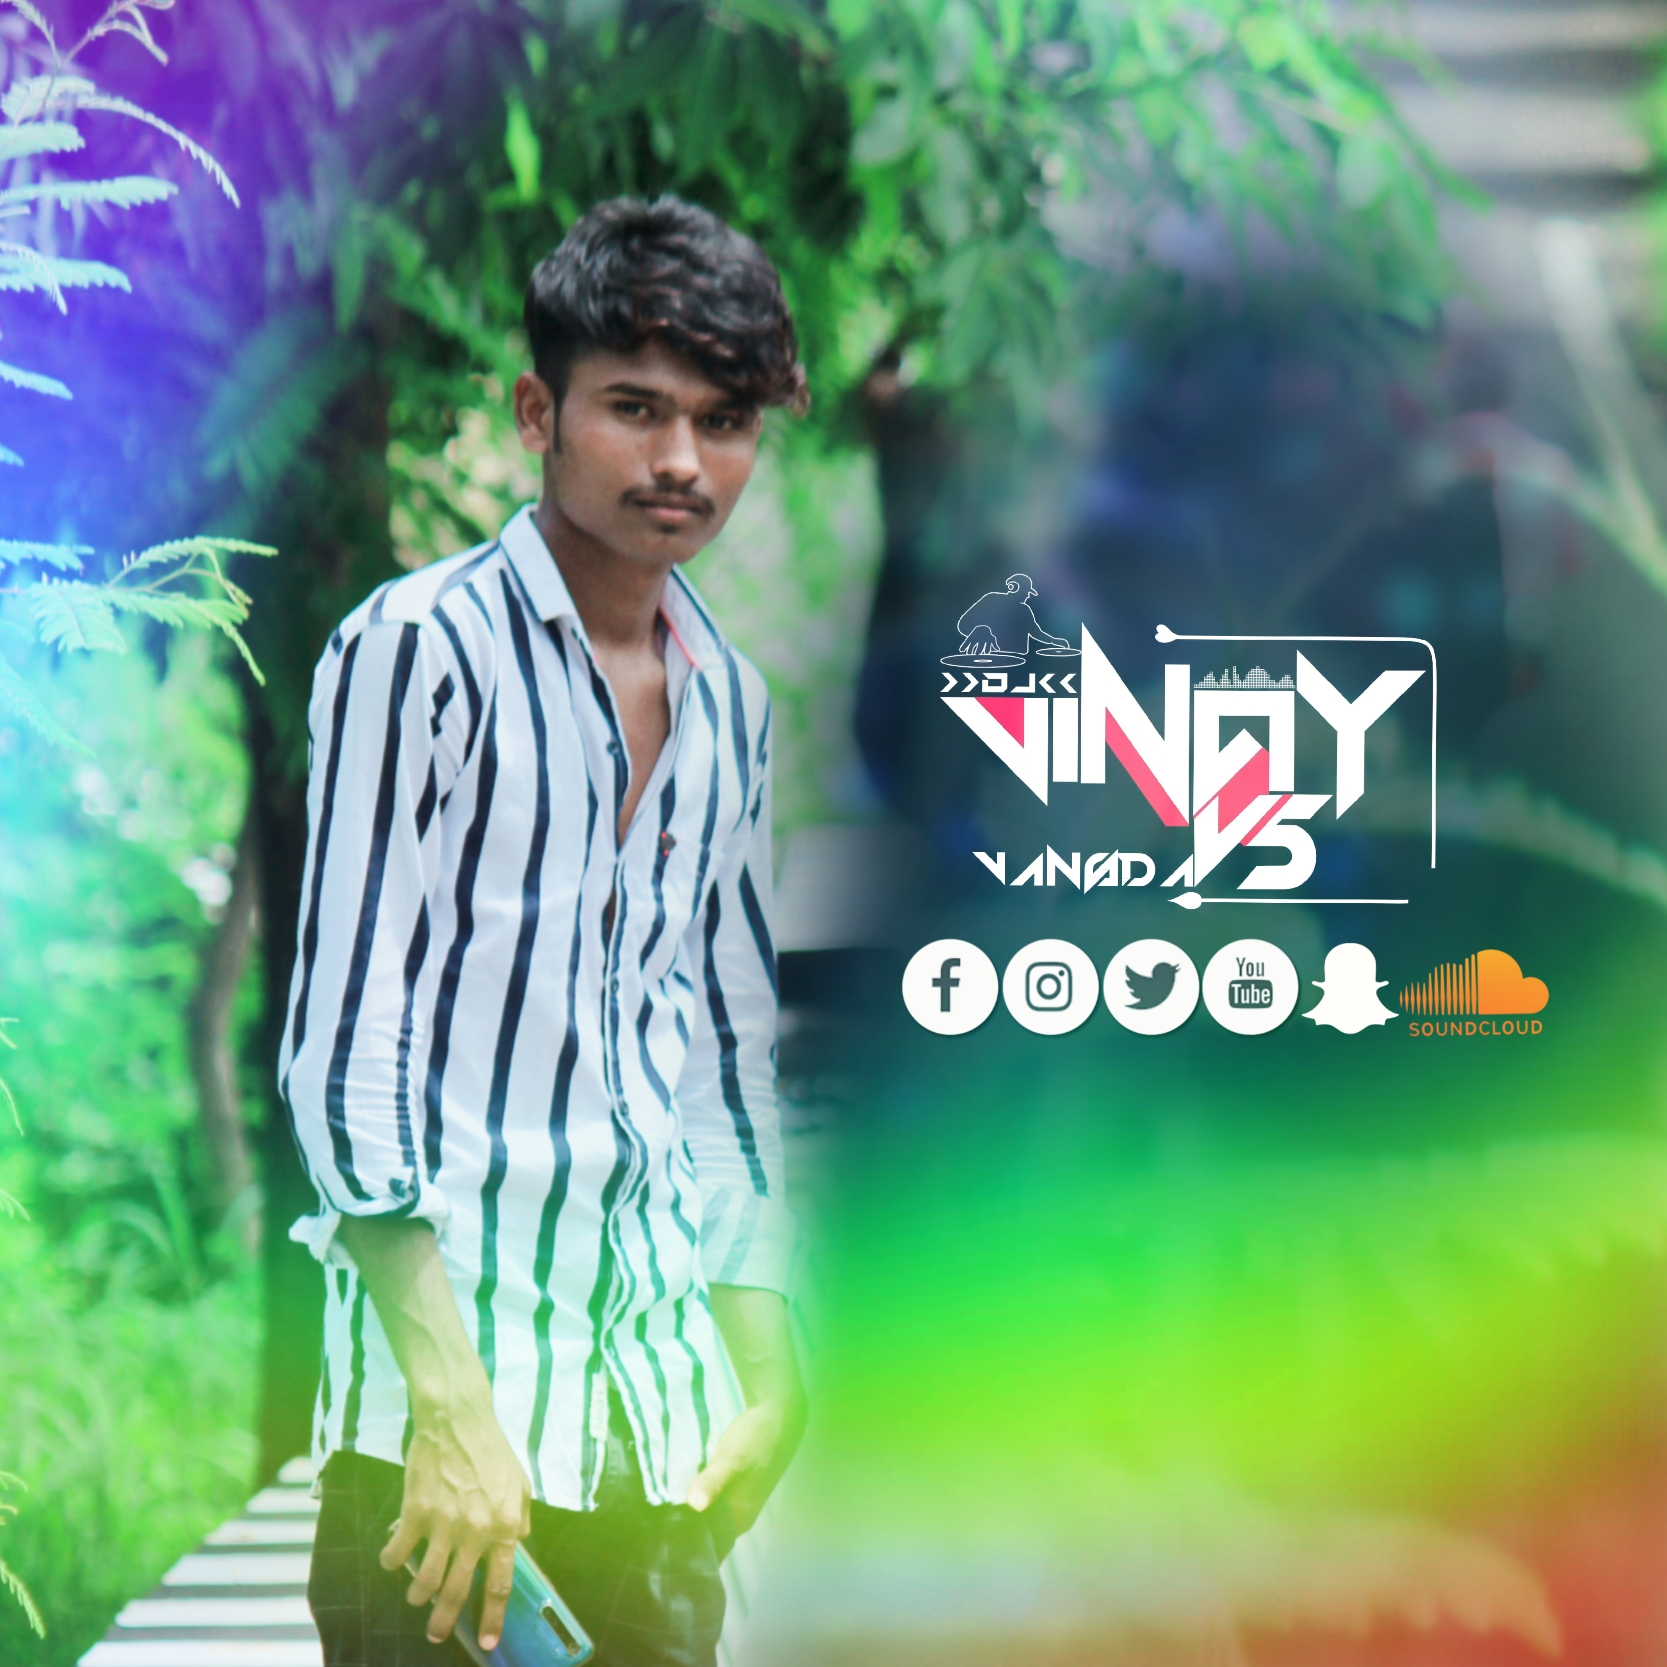 He Goriya Dil Churai Leti Re [GAMIT DHOLKI MIX] [DJ VINAY V5 FROM VANSDA]